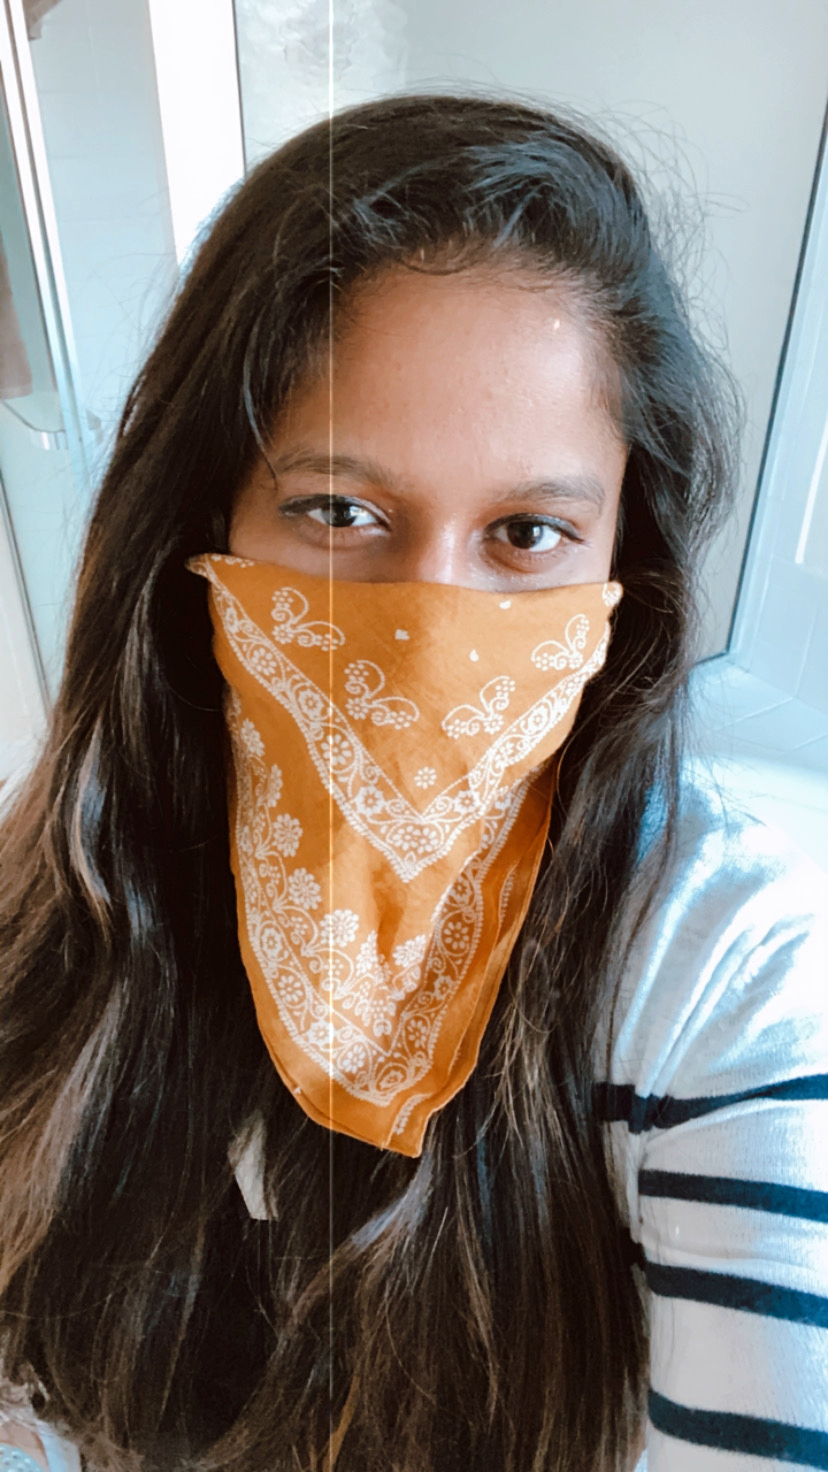 Wear Cloth masks to avoid spreading Corona Virus; COVID-19: How the VIRUS SPREADS and How to PROTECT YOURSELF AND OTHERS featured by top US fashion blog, Dreaming Loud picture of a women | Covid 19 survival tips and tricks by popular Maryland lifestyle blog, Dreaming Loud: image of a woman with and orange bandana tied around her face.